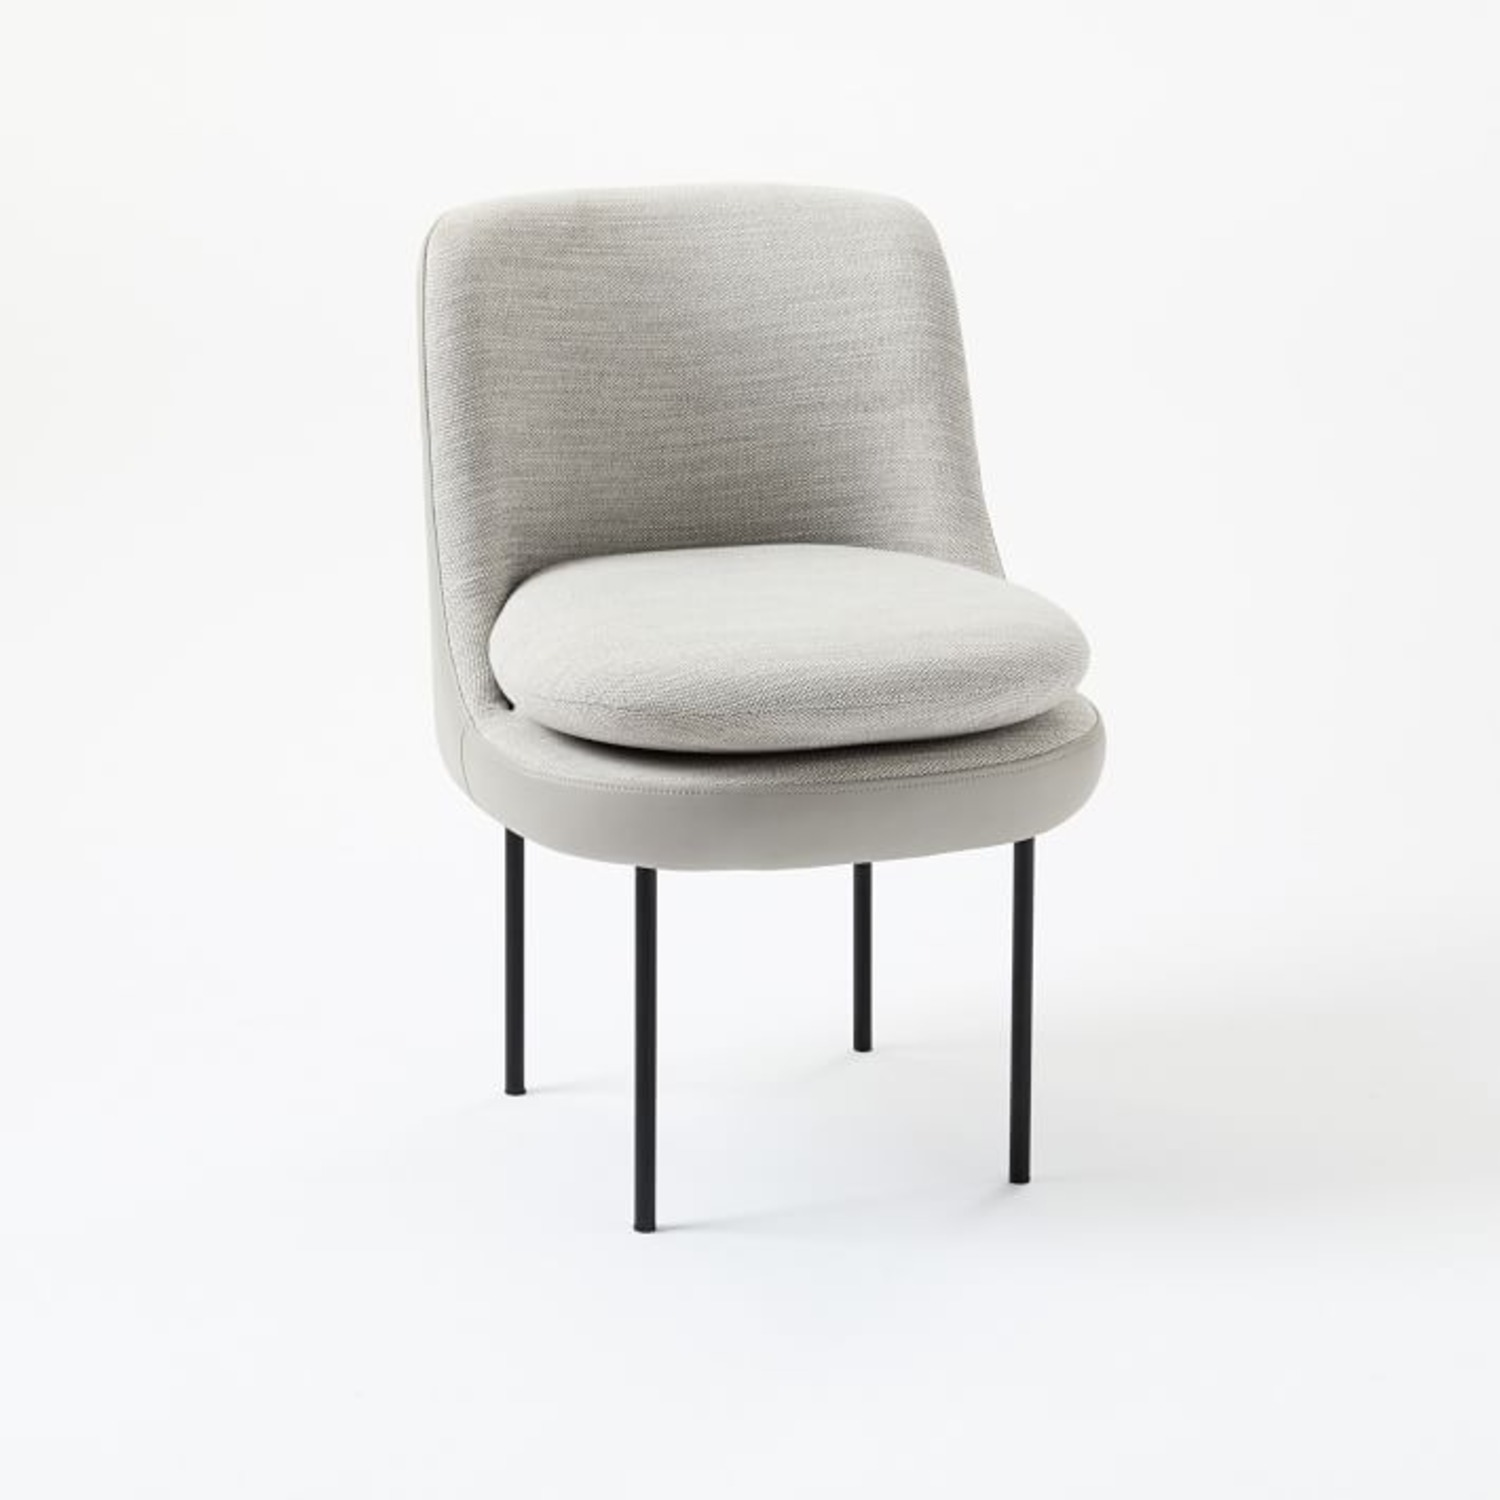 West Elm Modern Curved Leather Back Dining Chair - image-1